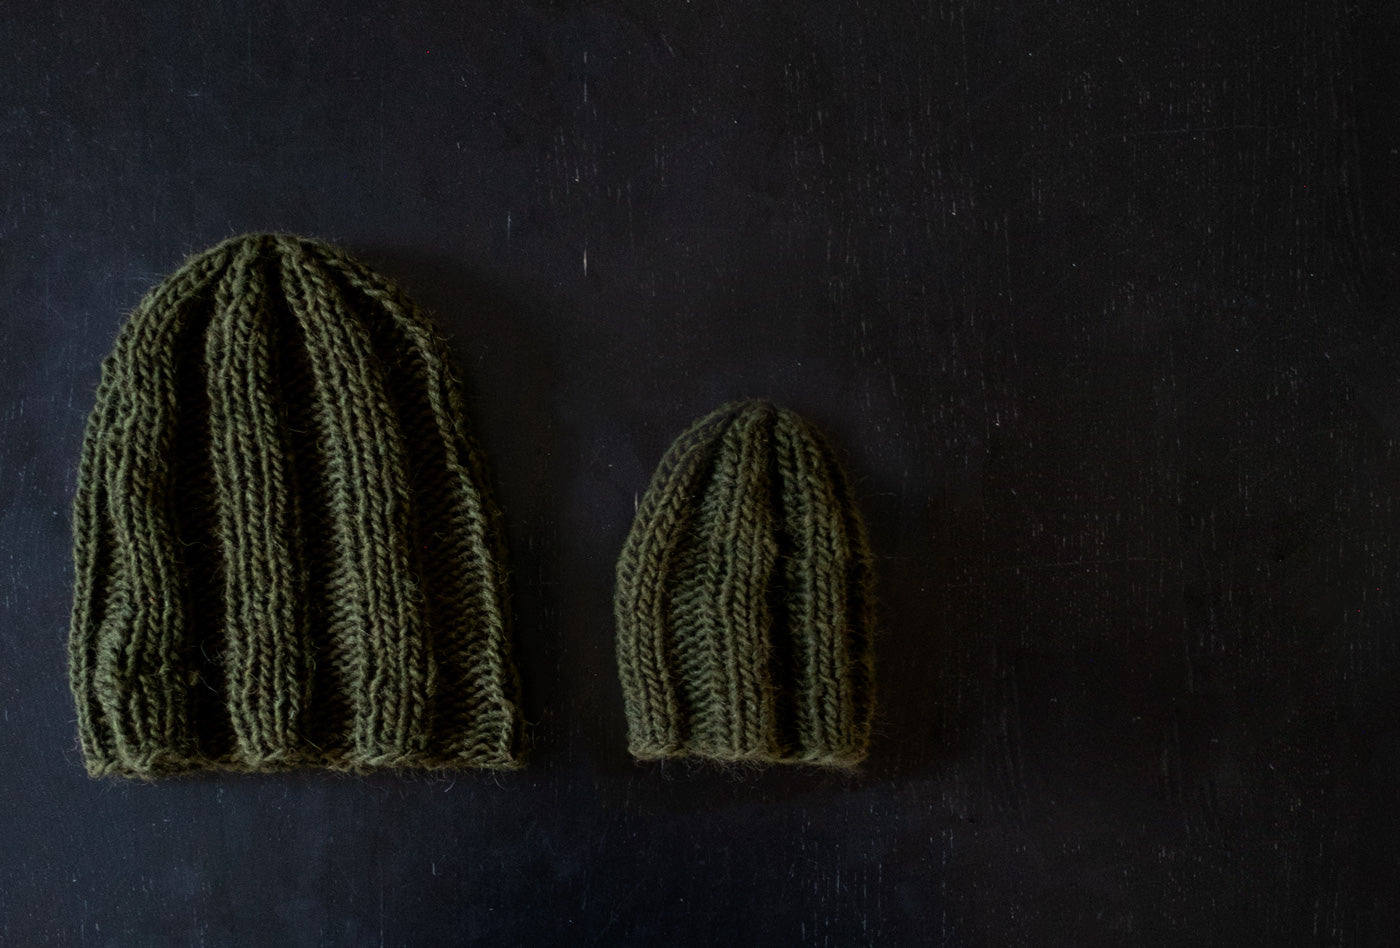 Two olive-hued, chunky knit hats lay on a dark wood background. The hat in the center is much smaller than the adult hat to the left of the photo. Adorably small, it is sized for a baby or toddler.